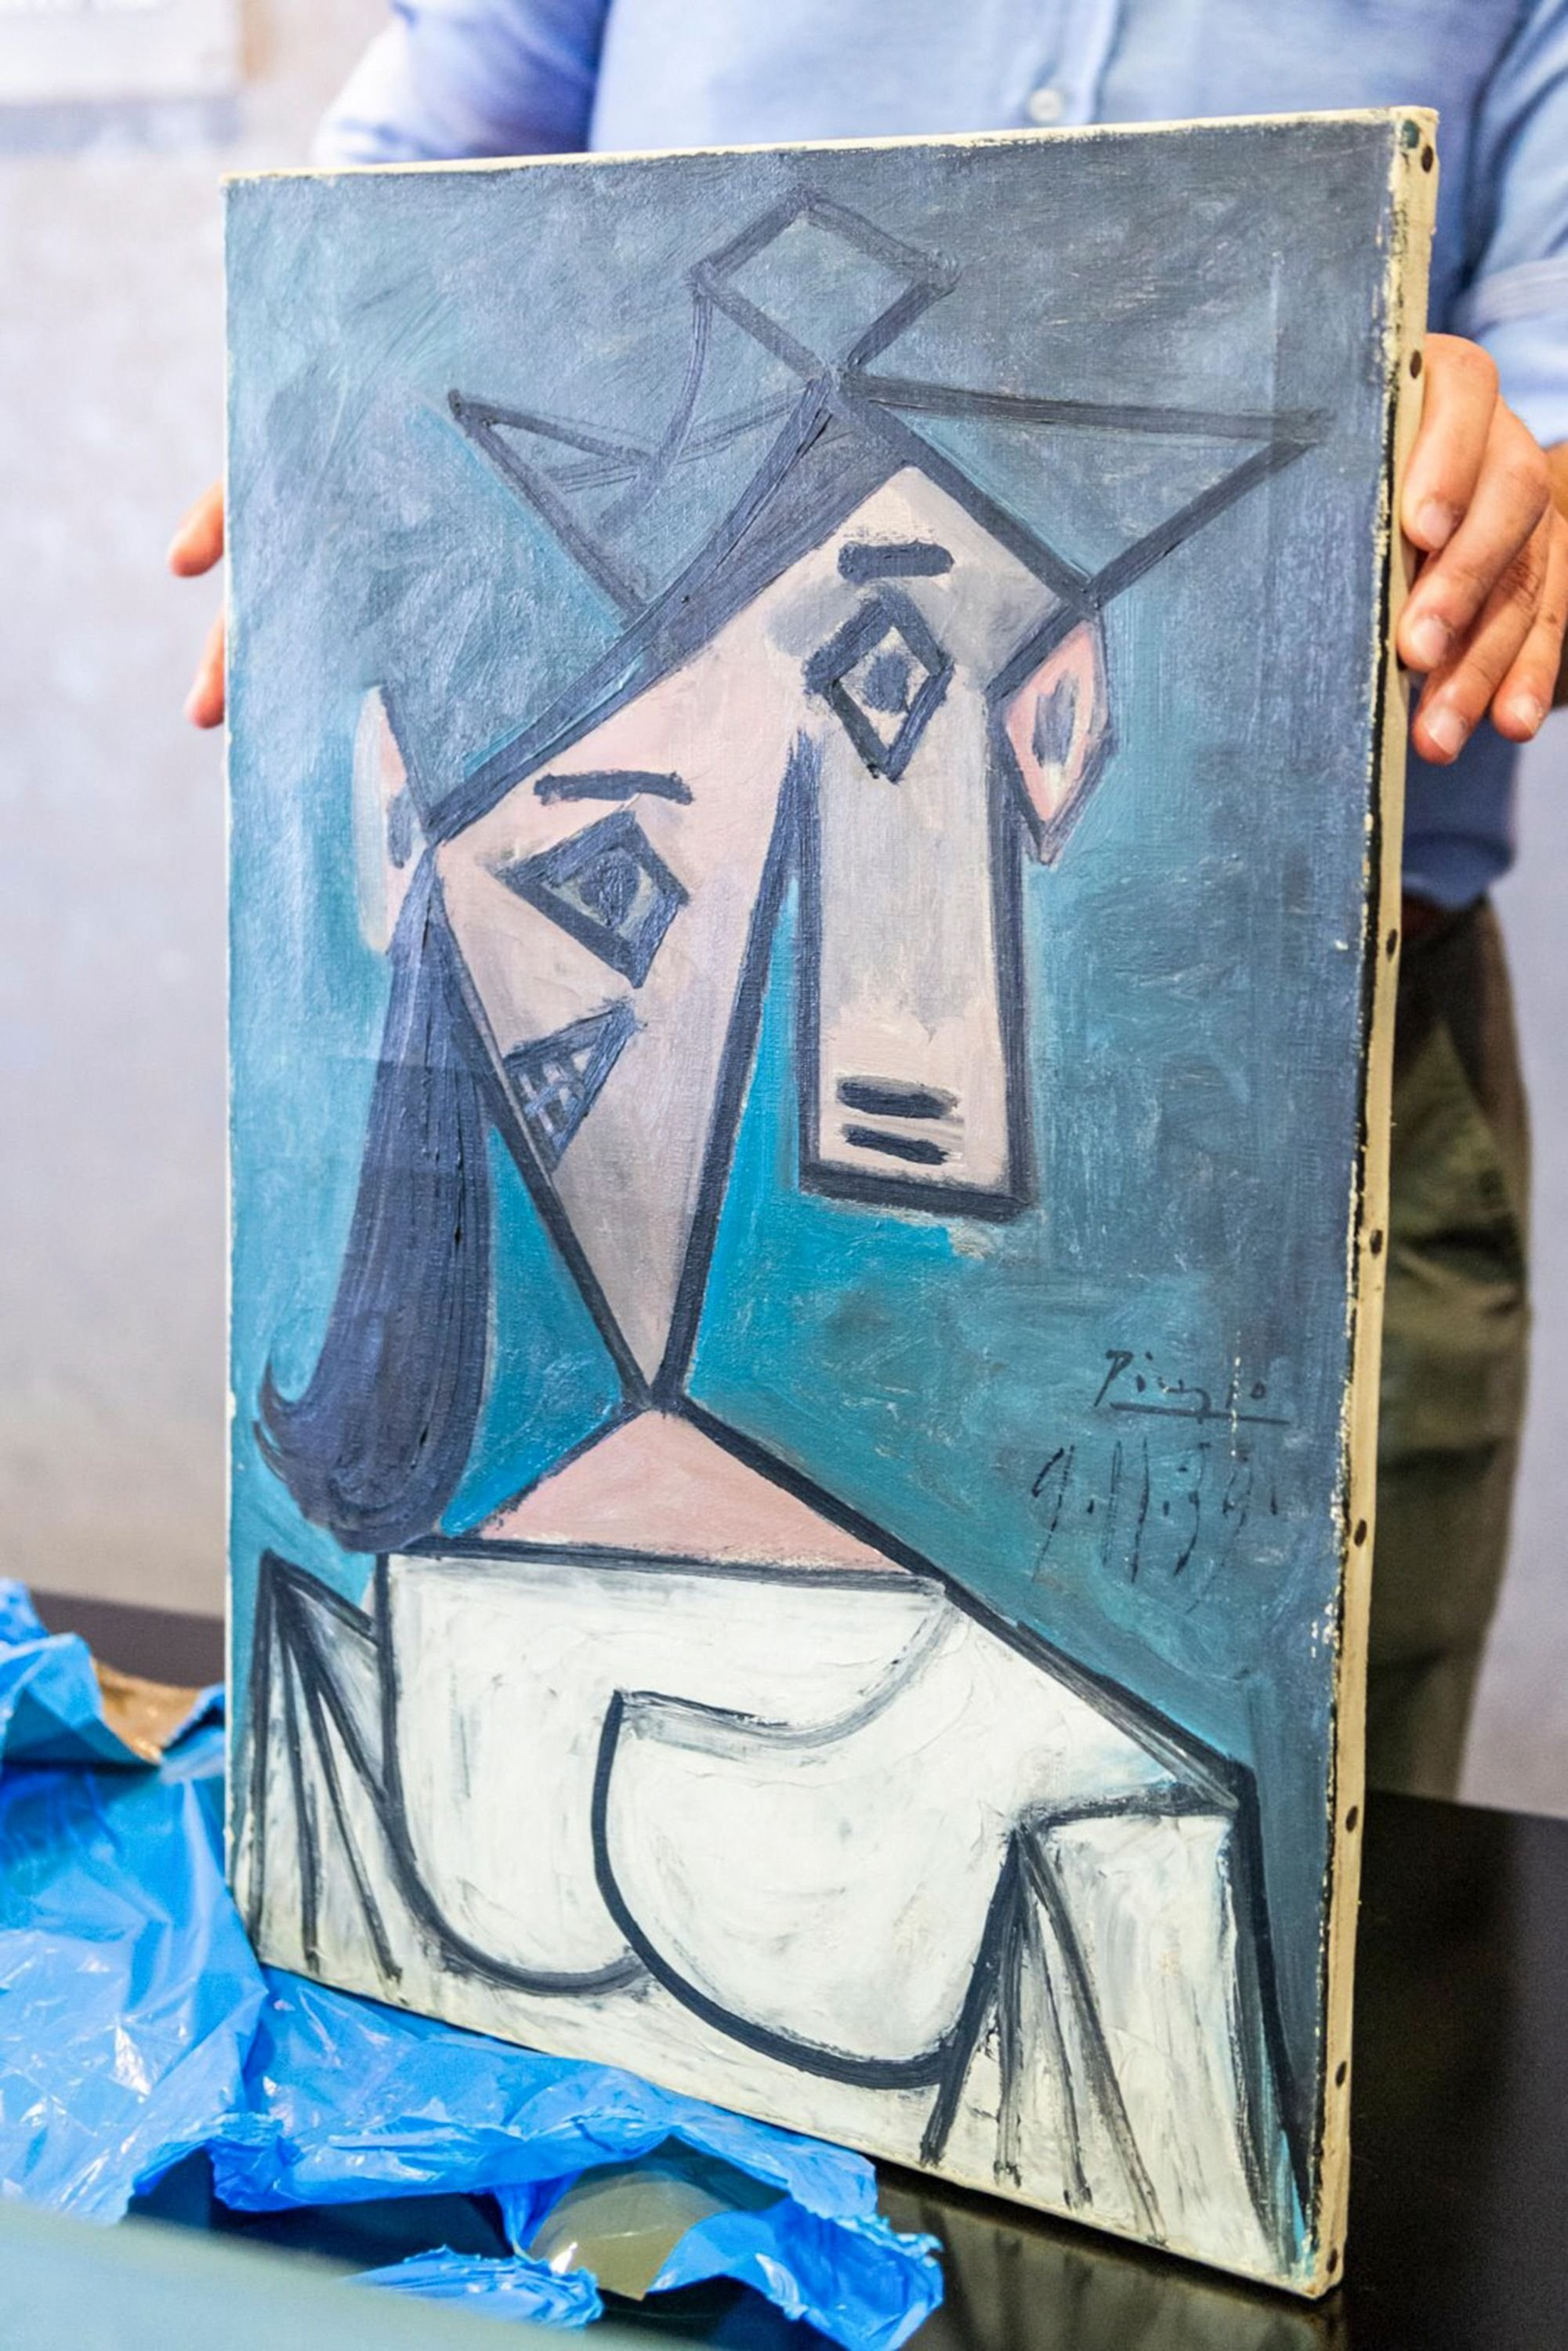 An official presents a recovered painting of Pablo Picasso titled 'Head of a Woman', in Athens, Greece,June 29, 2021. (Greek Police via AFP)